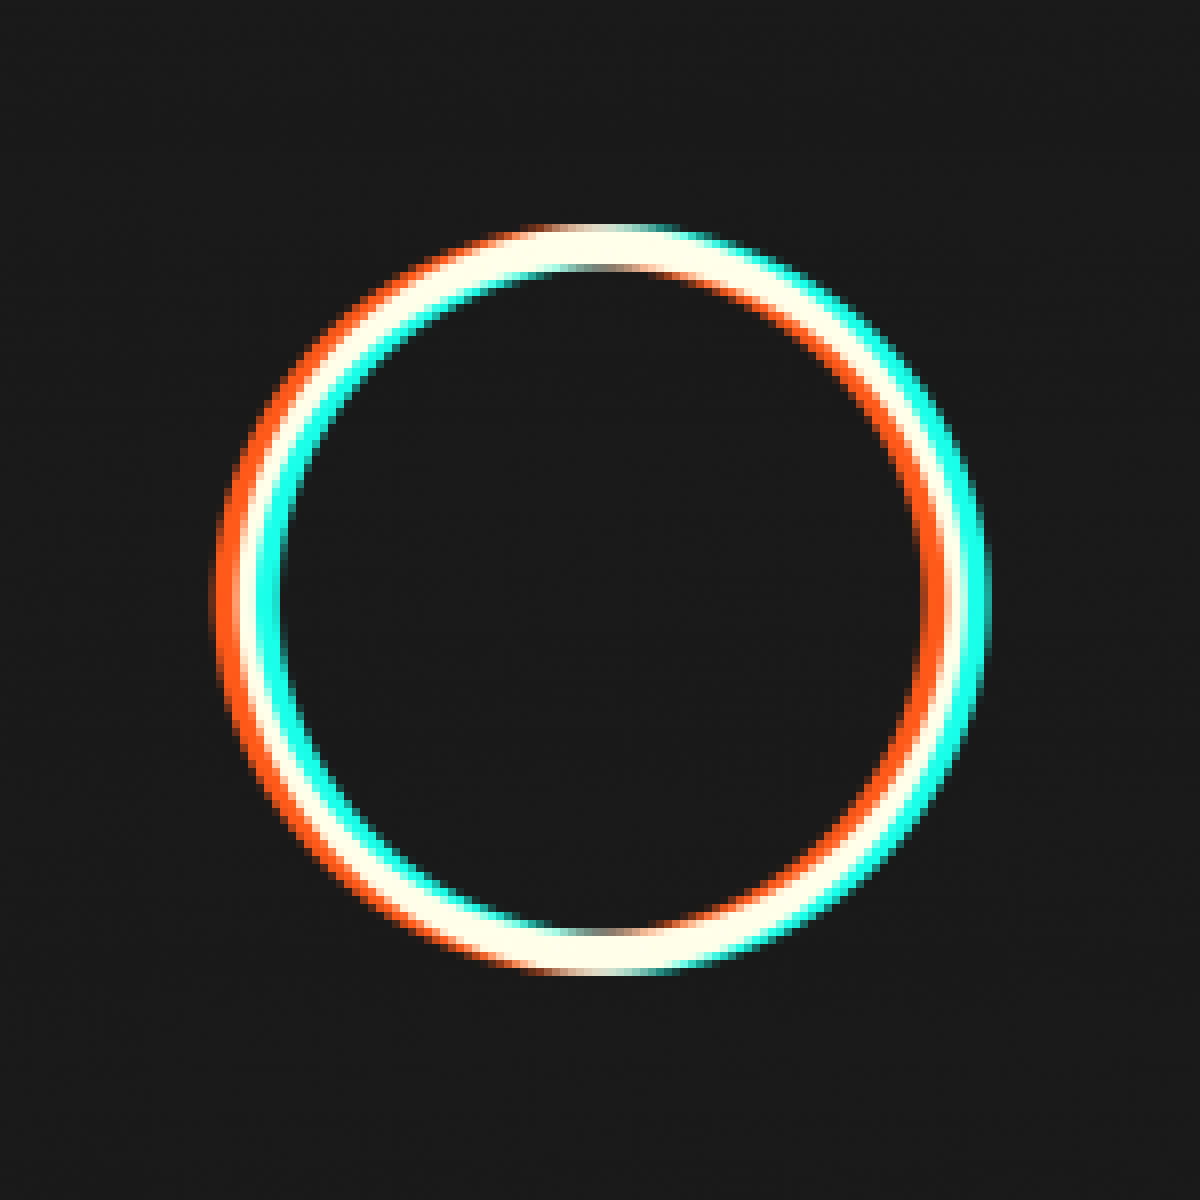 Polarr Photo Editor Mod Apk 6 0 35 Download Unlocked For Android